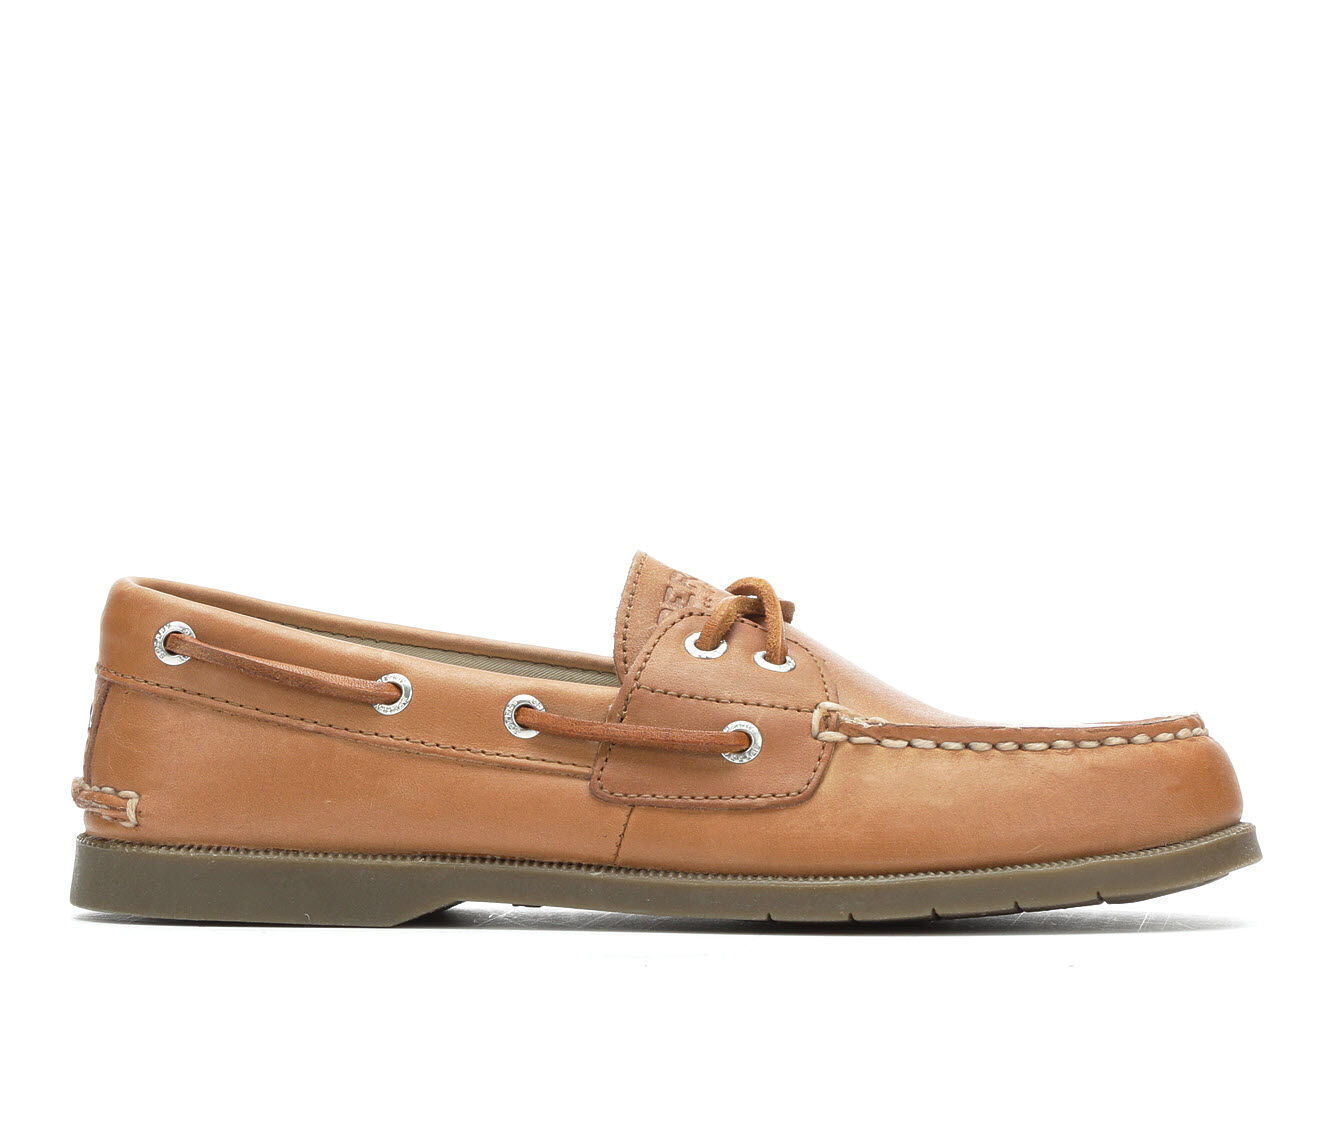 Women's Sperry Conway Boat Boat Shoes Sahara